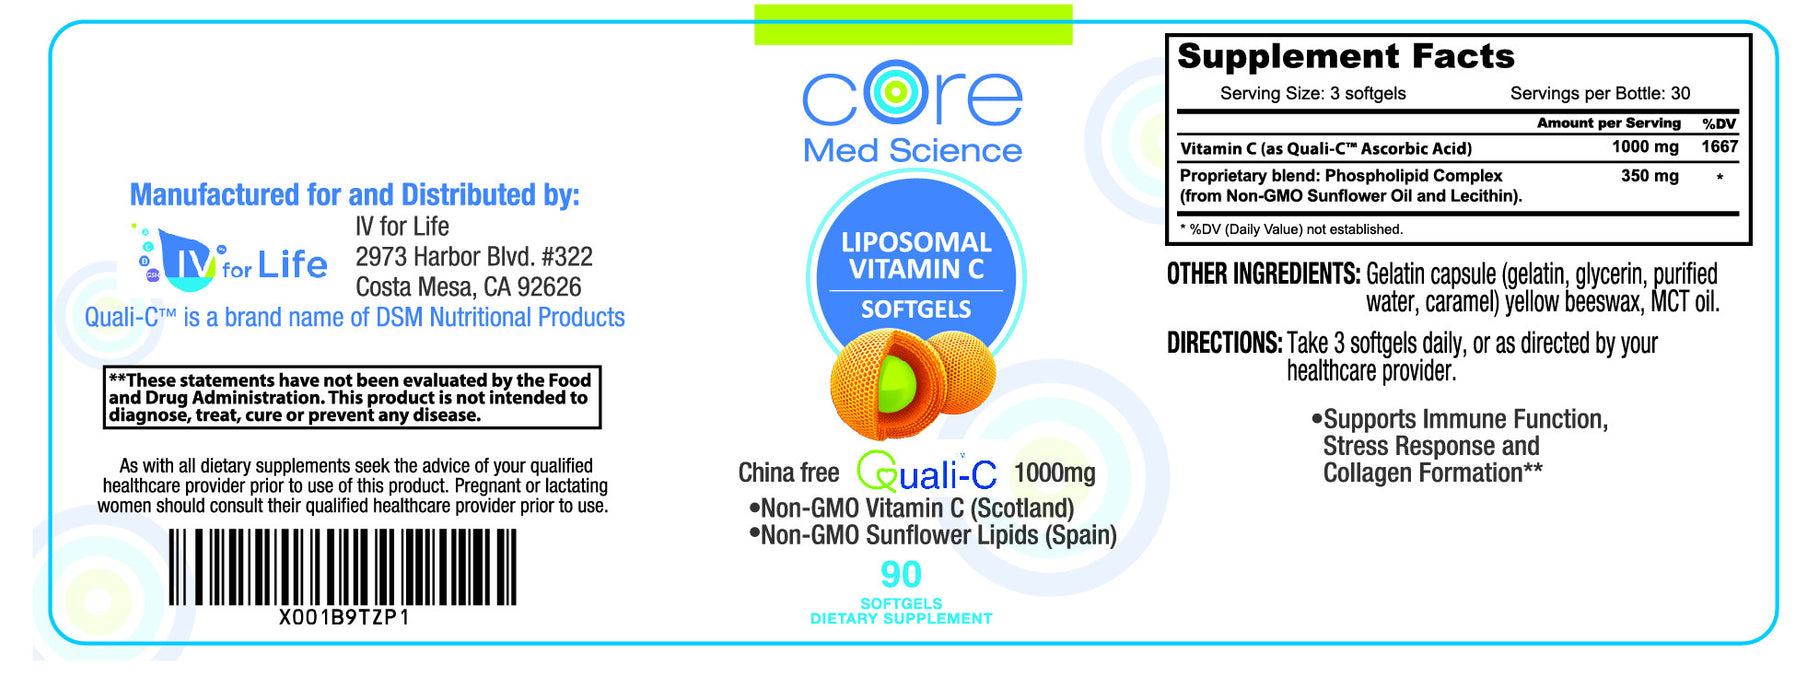 Liposomal Vitamin C Softgels – Gold Standard Quali®-C Vitamin C from Scotland – Non-GMO – Made in the USA – cGMP - Thirty 1000mg Servings